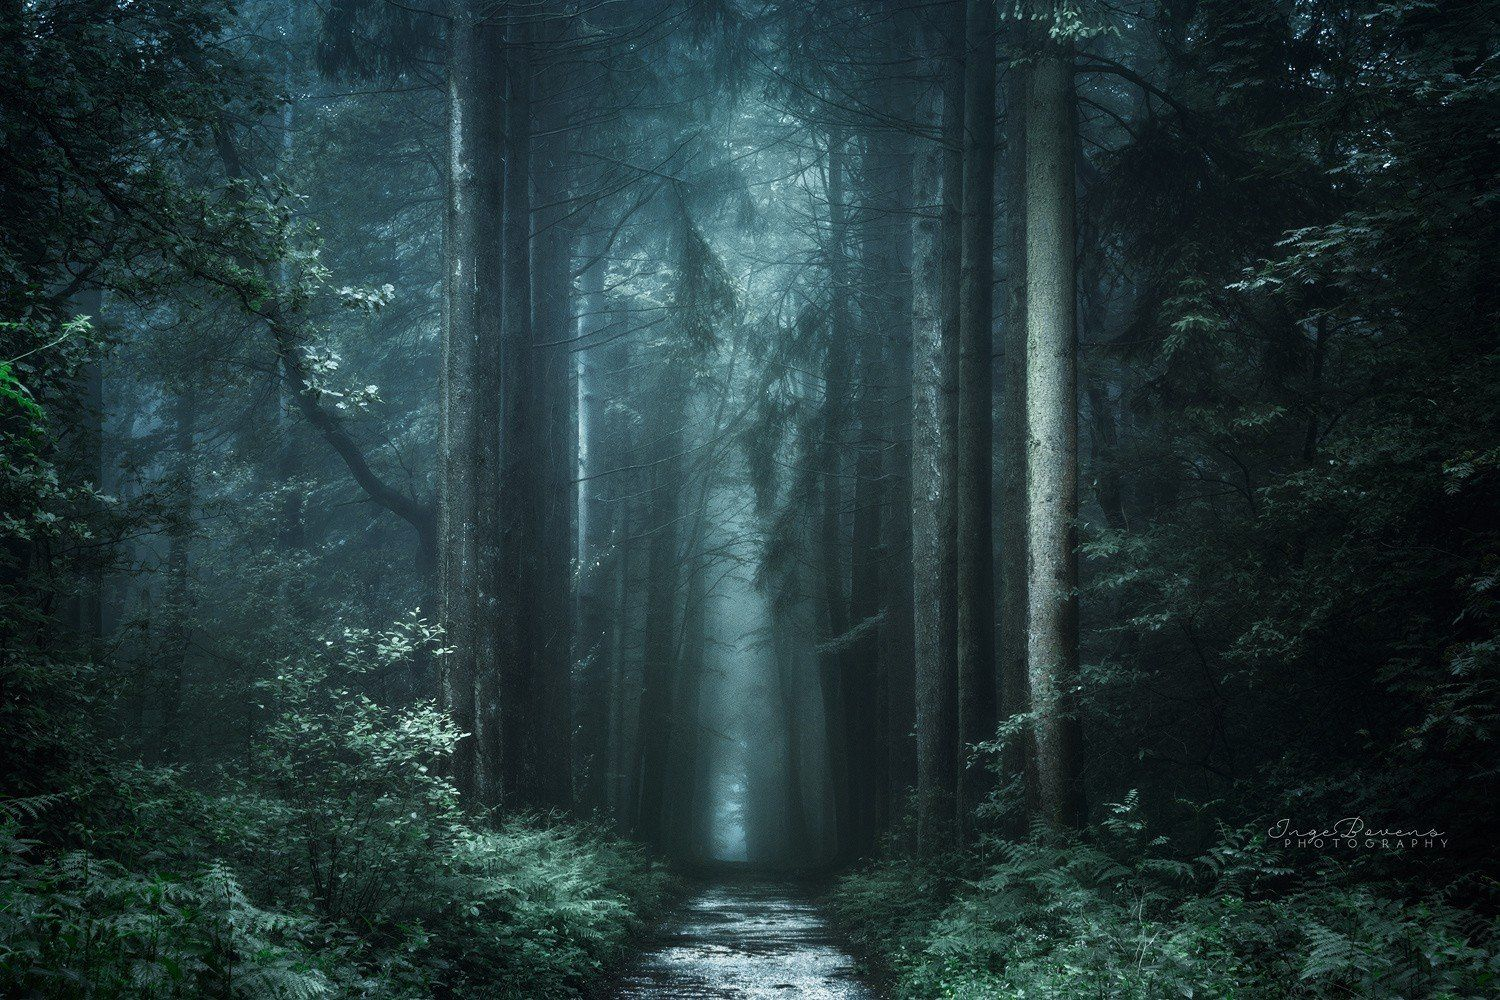 Free Stock Photos Fall Path Photography Trees Mobile Wallpaper Wallpapers Landscape Plants Tumblr Nature Forest Dark Landscape Nature Forest